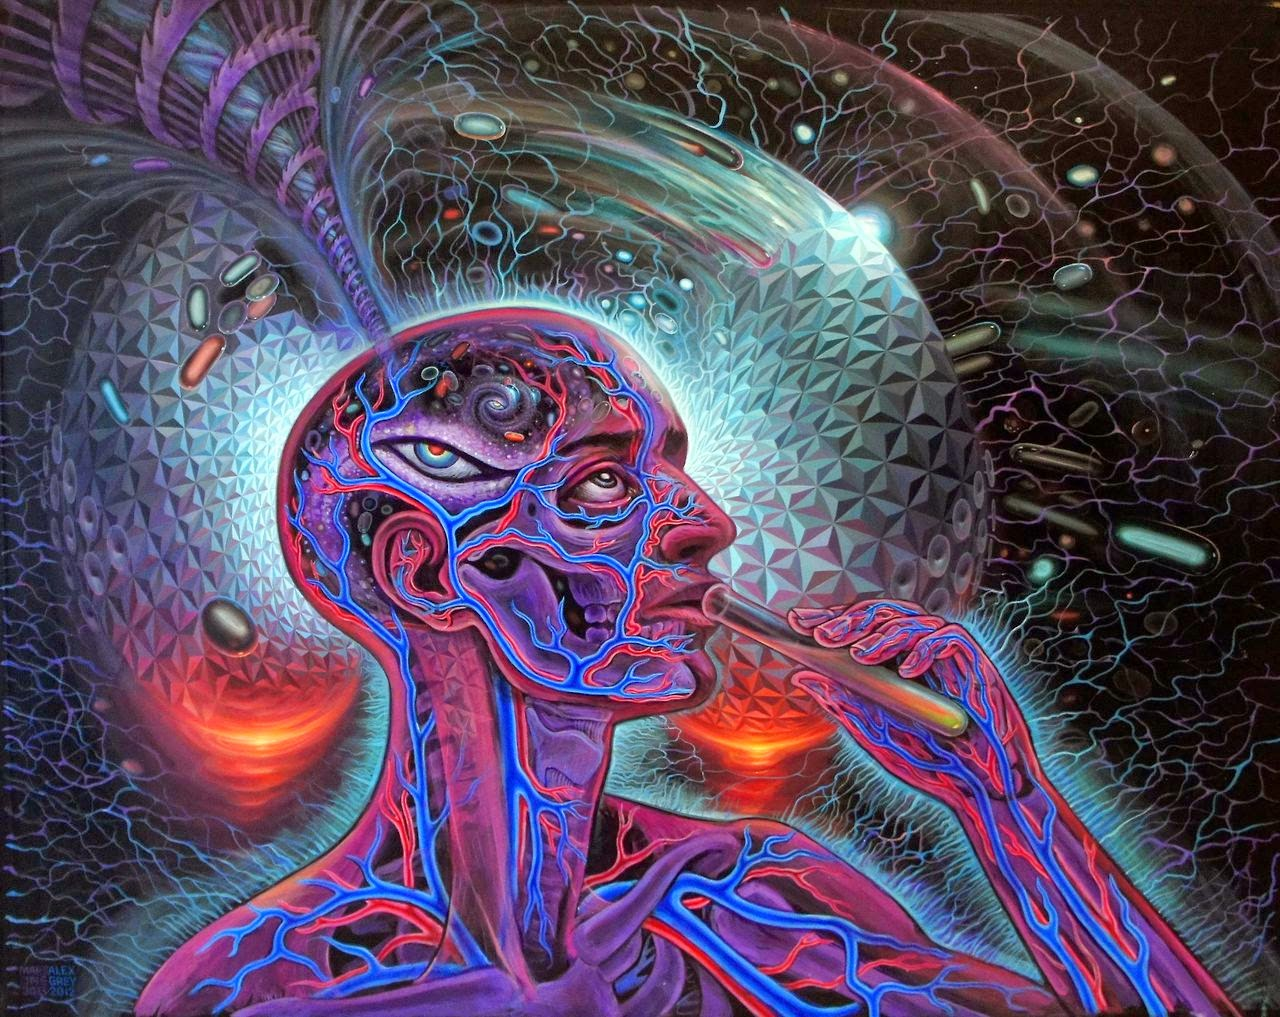 Augureye Express: DMT and the Persistent Illusion